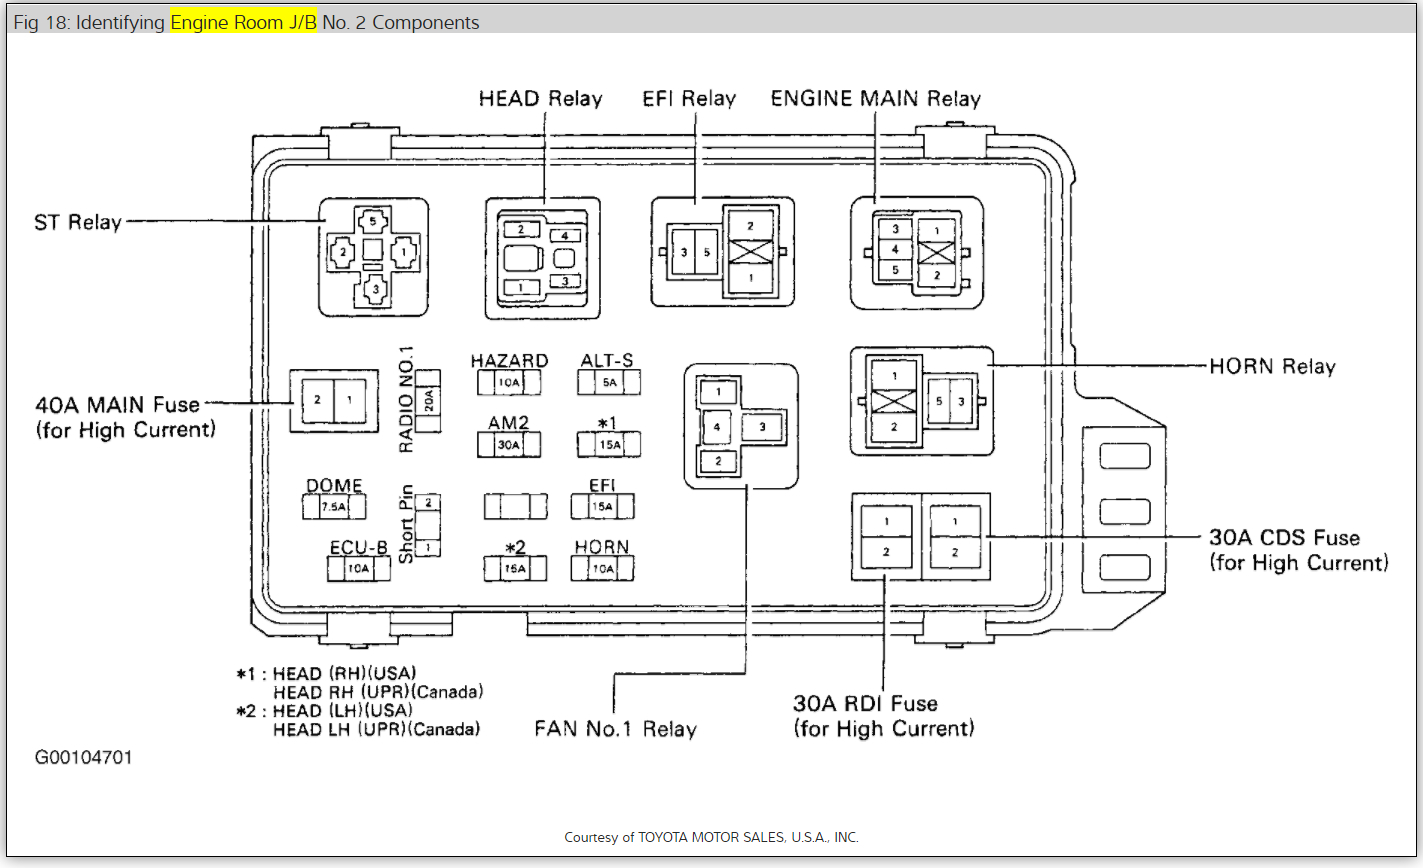 Fuel Pump Relay  Where Is The Fuel Pump Relay On A 1998 Toyota